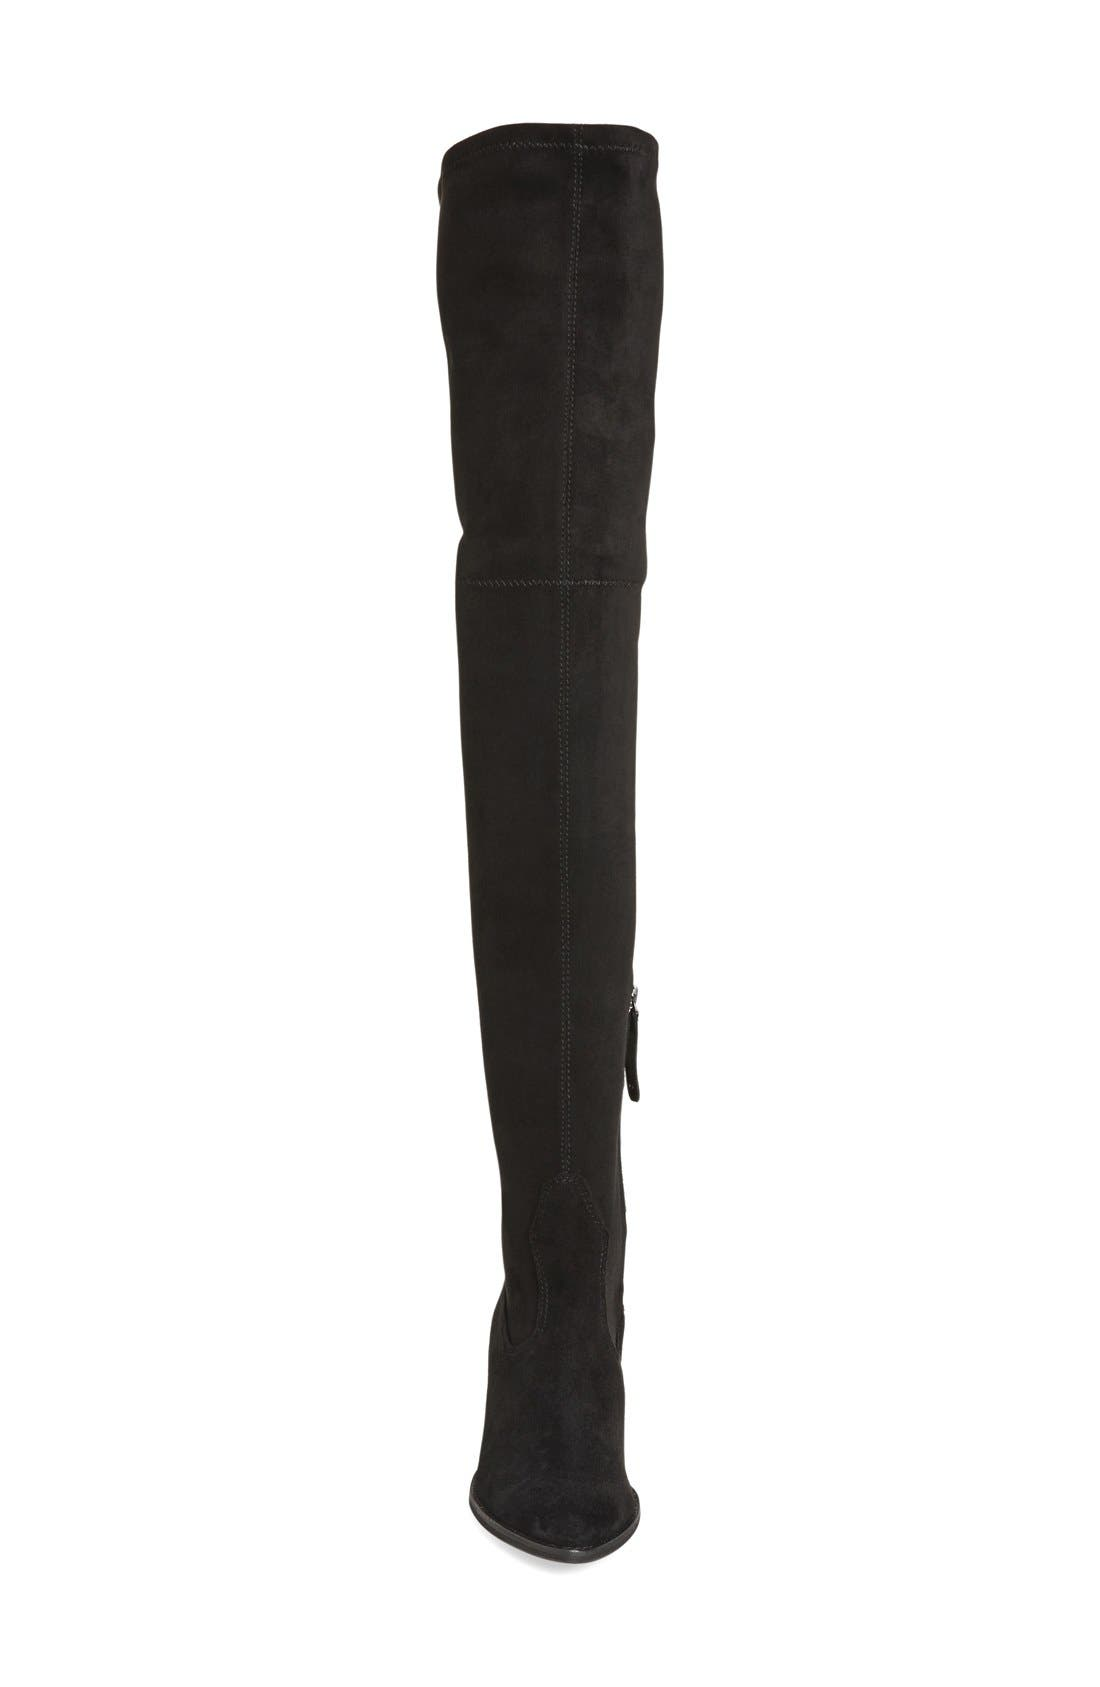 'Sparrow' Thigh High Almond Toe Boot,                             Alternate thumbnail 3, color,                             Black Suede